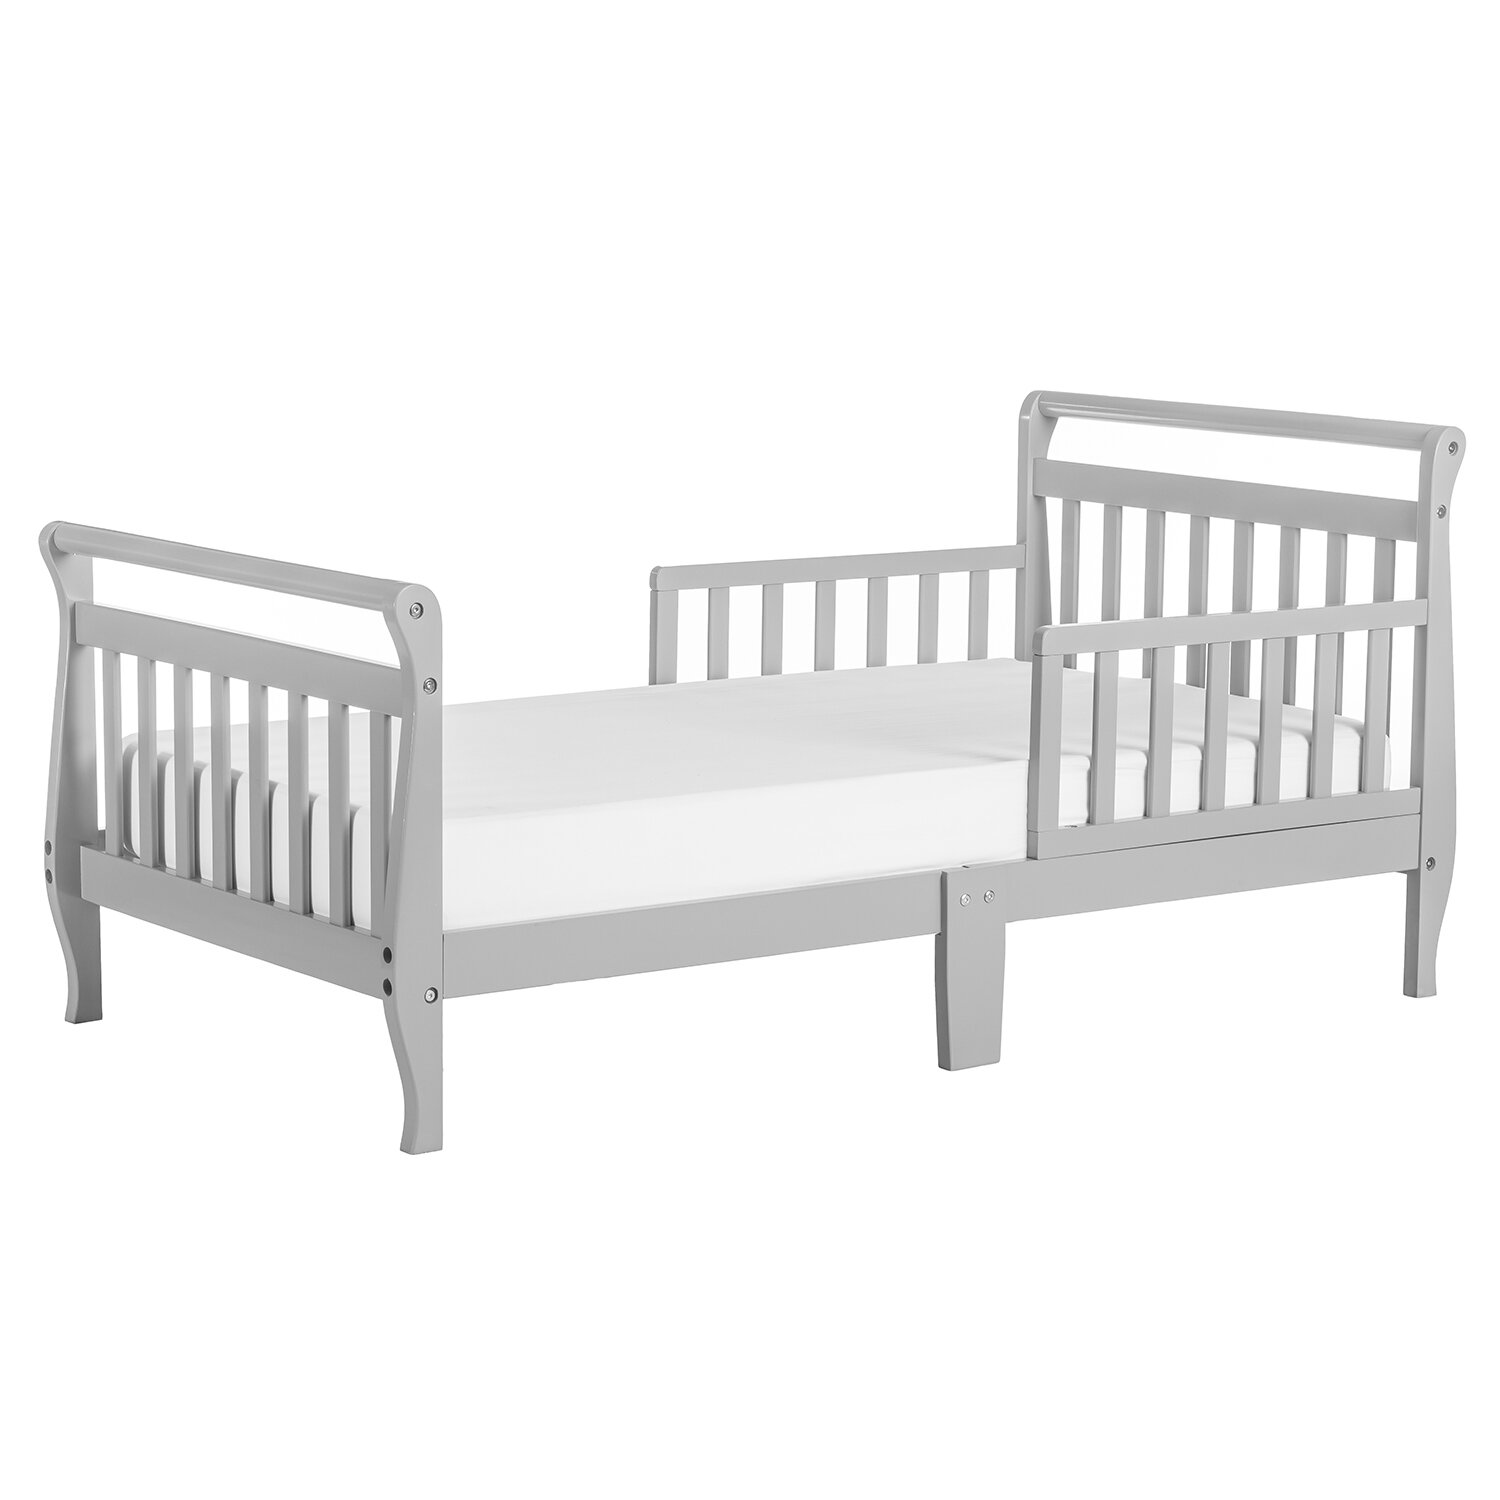 The Dream On Me Sleigh Toddler Bed